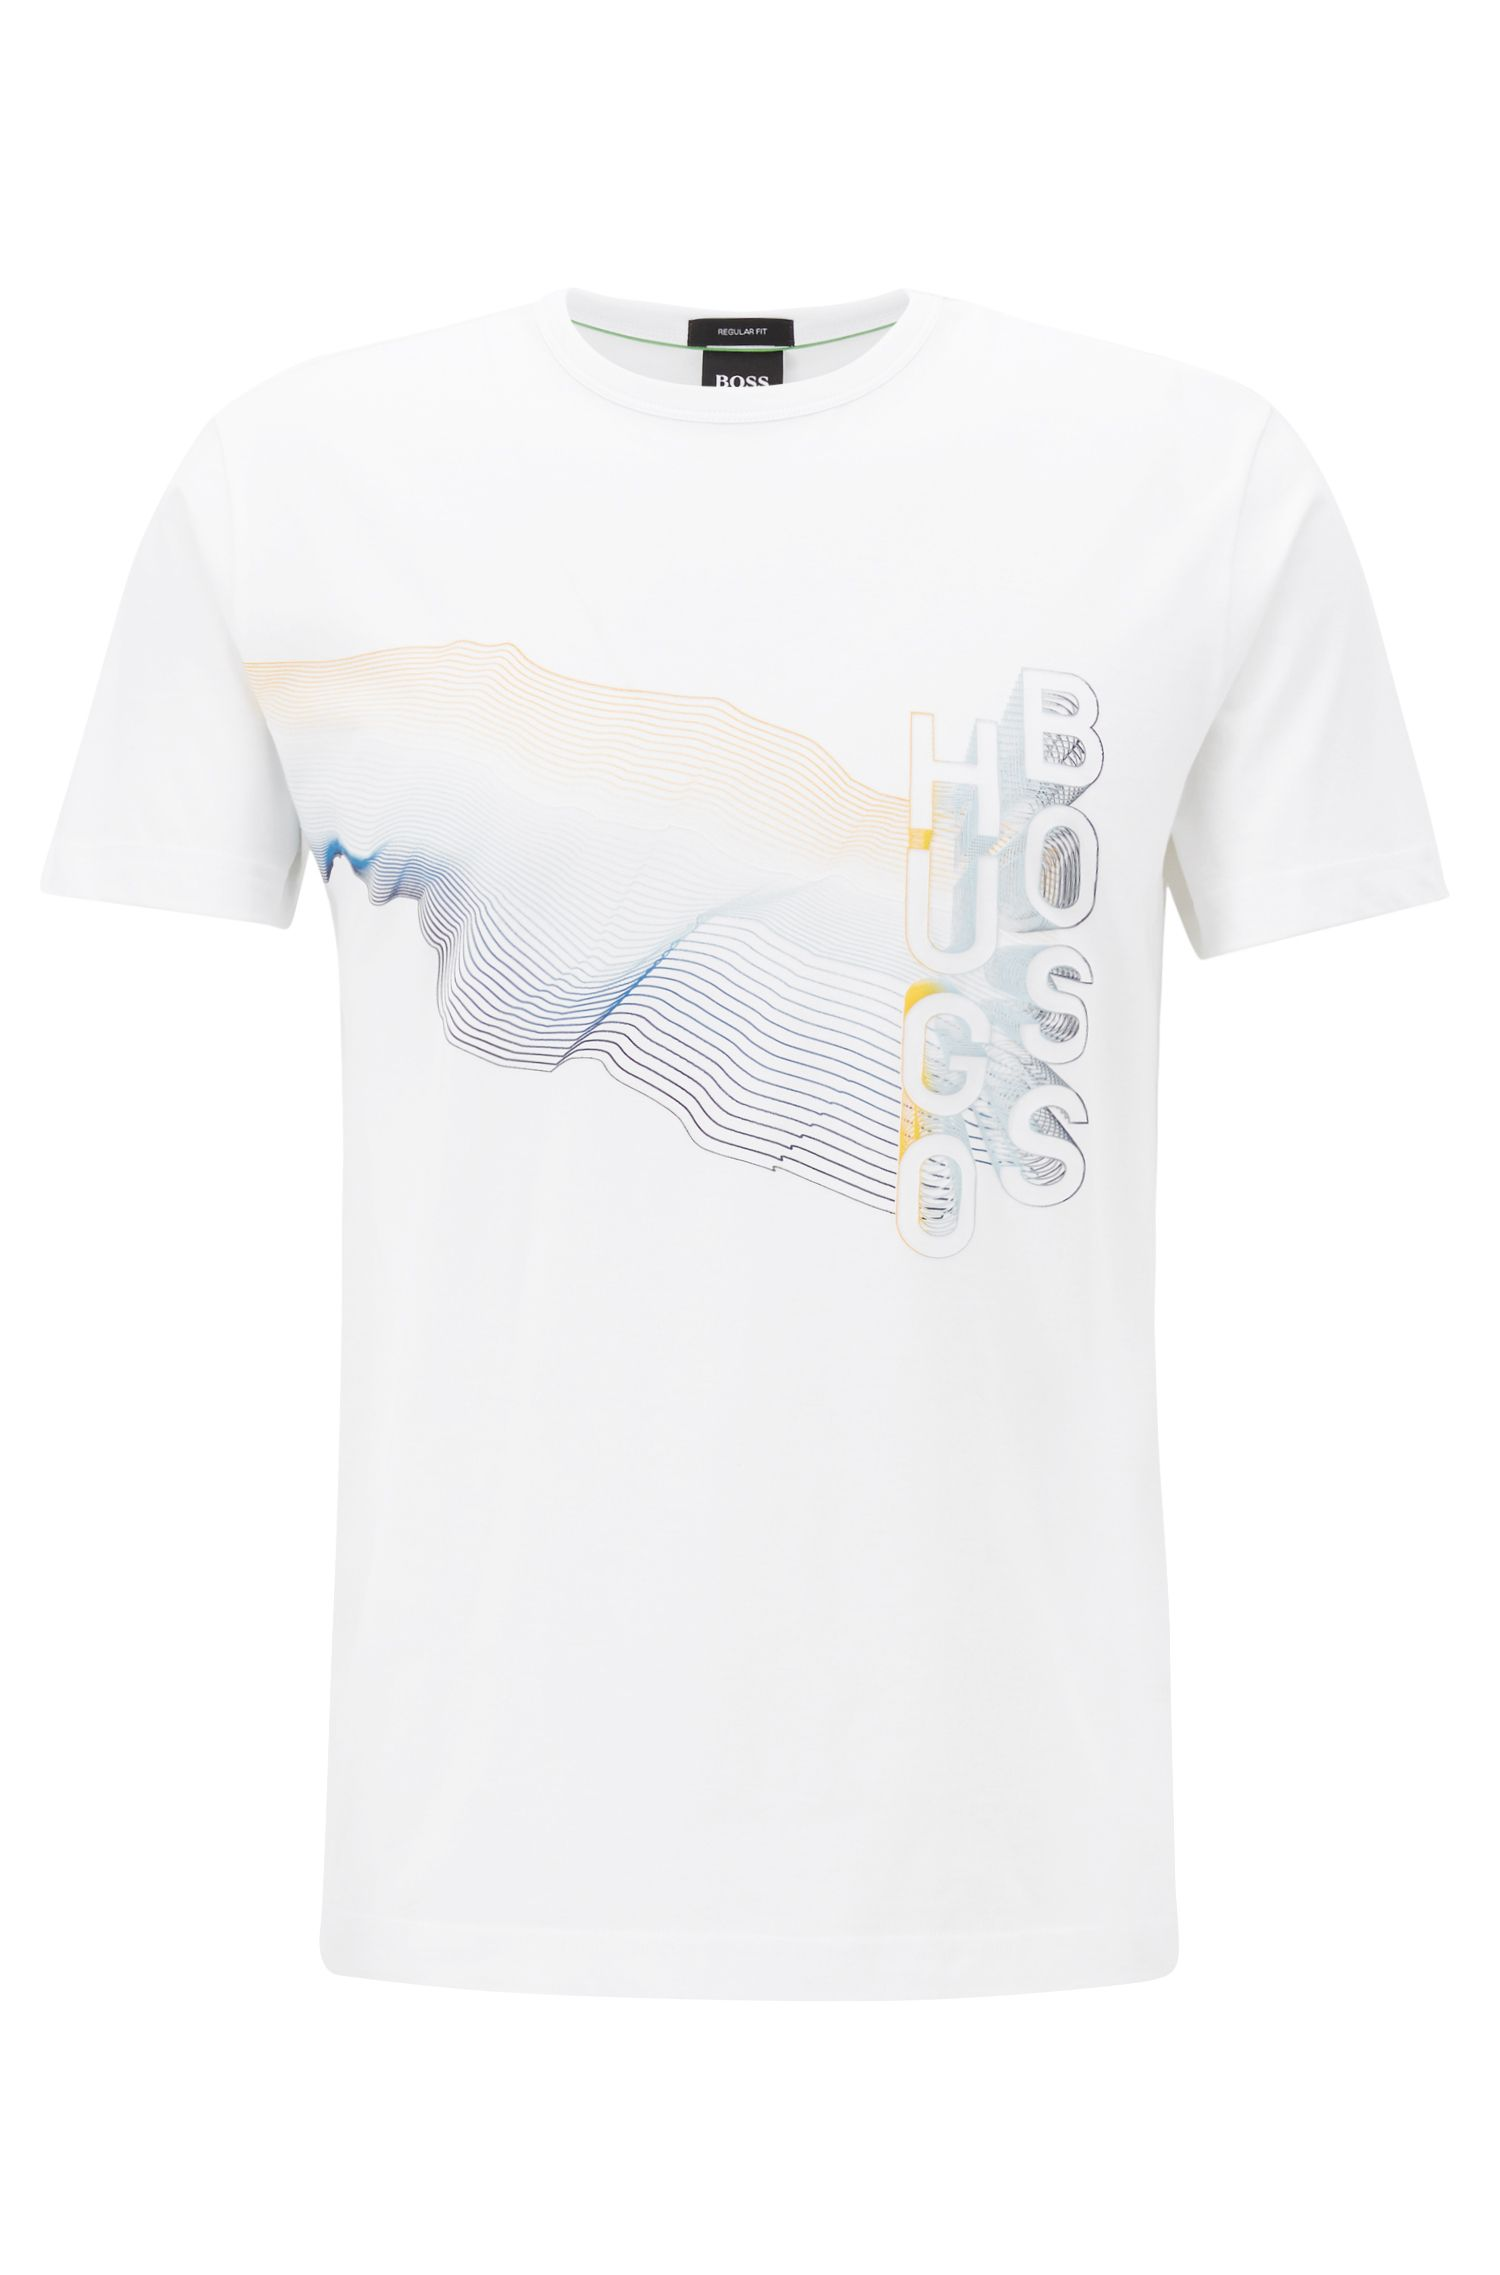 Crew-neck T-shirt in cotton with multicoloured graphic print, White